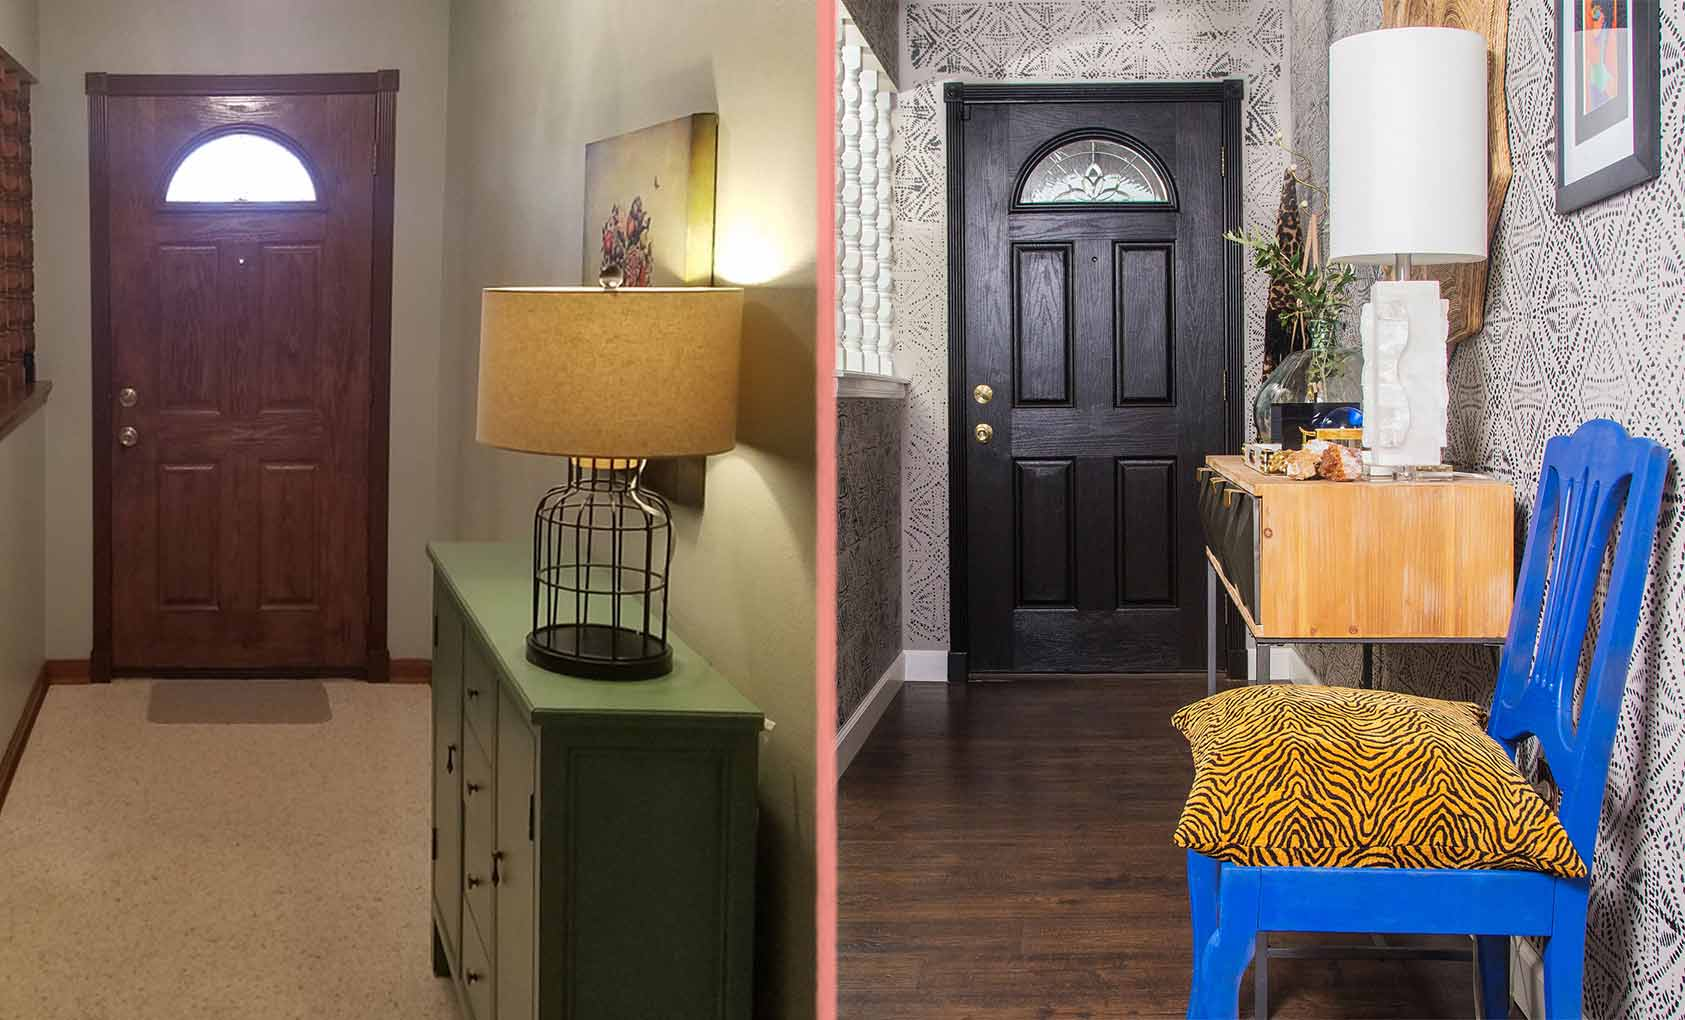 Before & After: Making Maximalism Work in a Tight Space, Design*Sponge